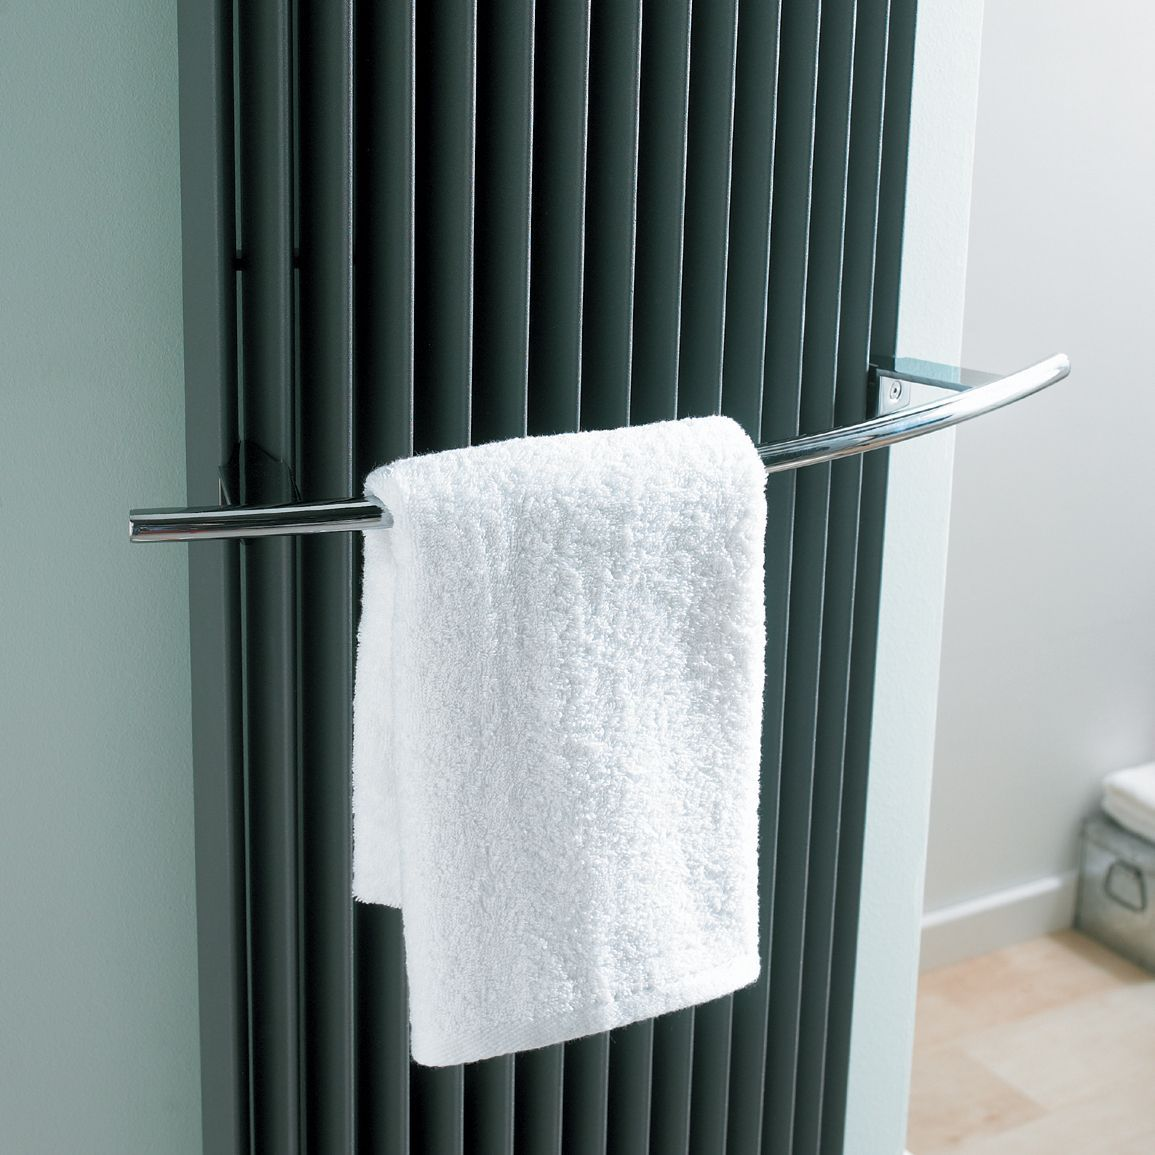 Jaga Chrome effect Towel rail (H)530mm (W)80mm (D)80mm